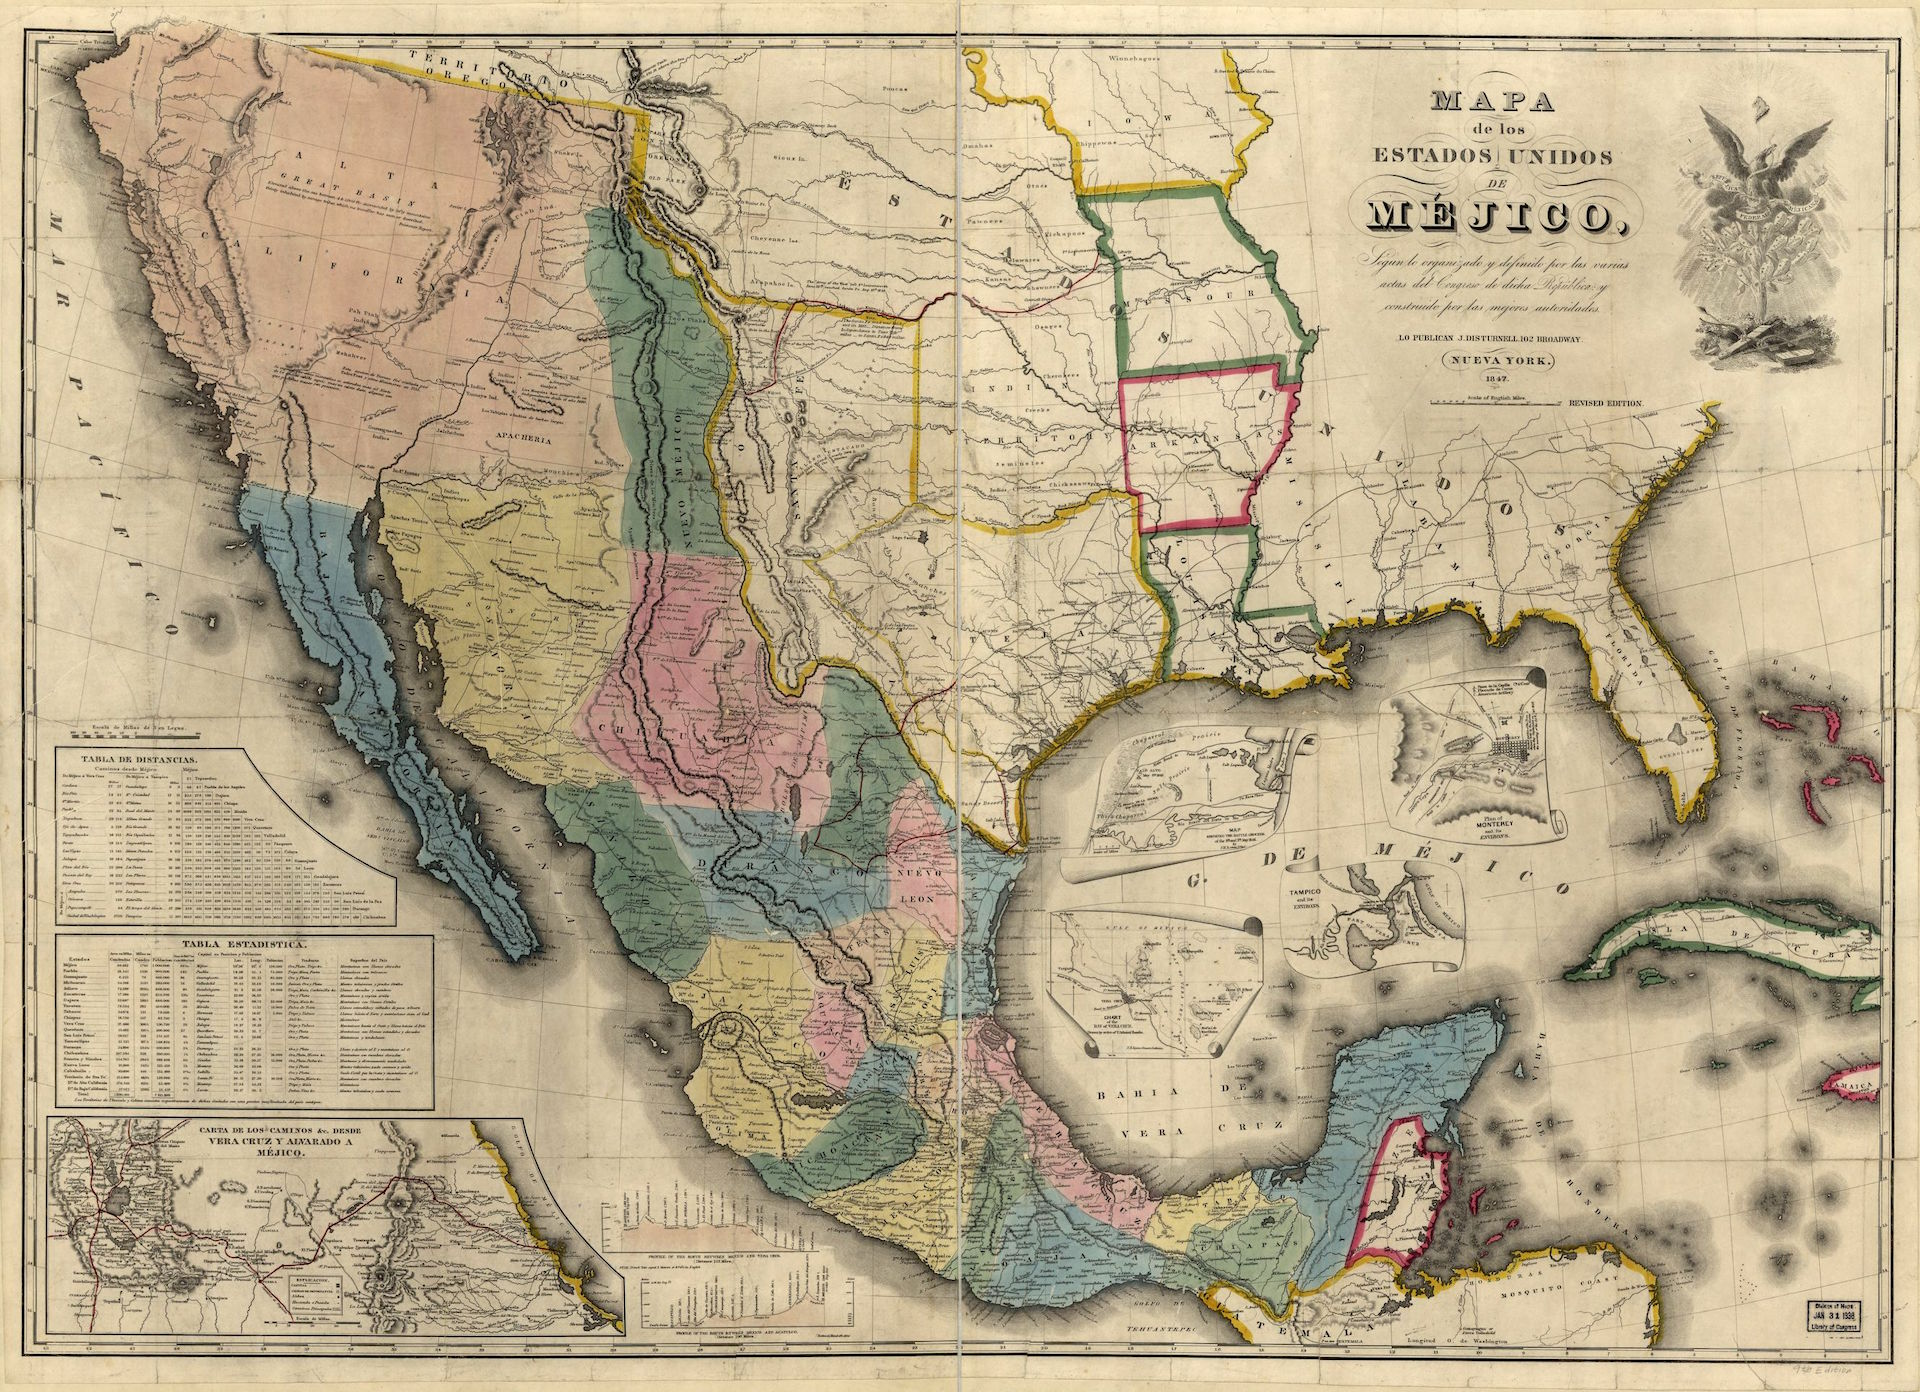 1847 map of Mexico